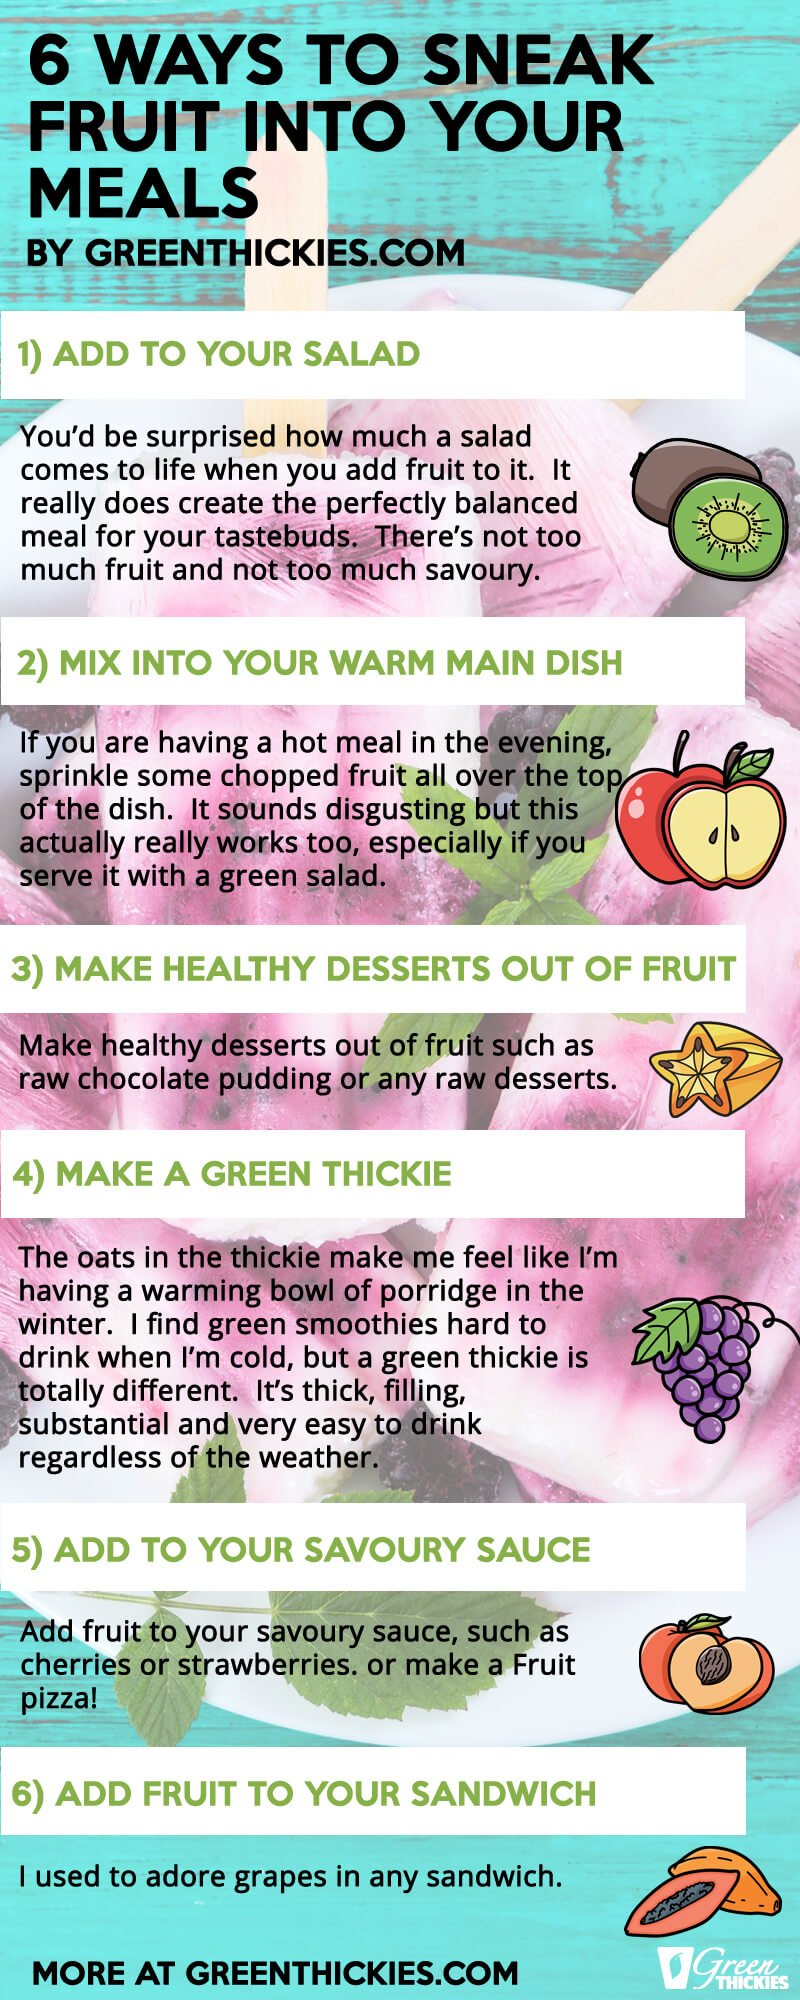 10 Awesome New Ways to Eat More Fruits for Health pin image with 6 facts